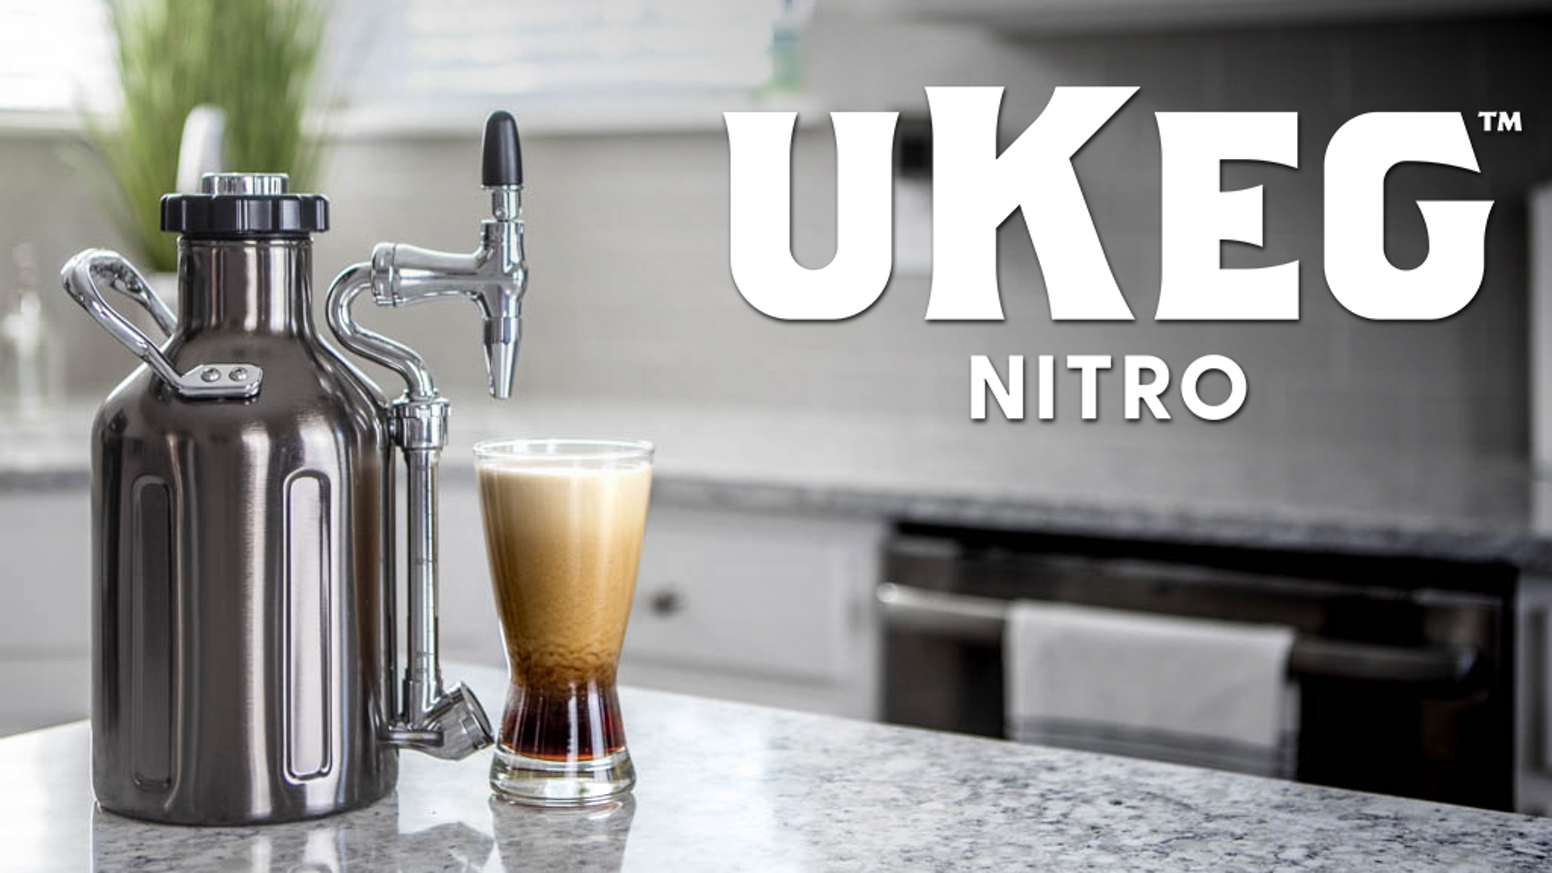 The first integrated nitro cold brew coffee maker and dispenser for the perfect at-home experience, now available.